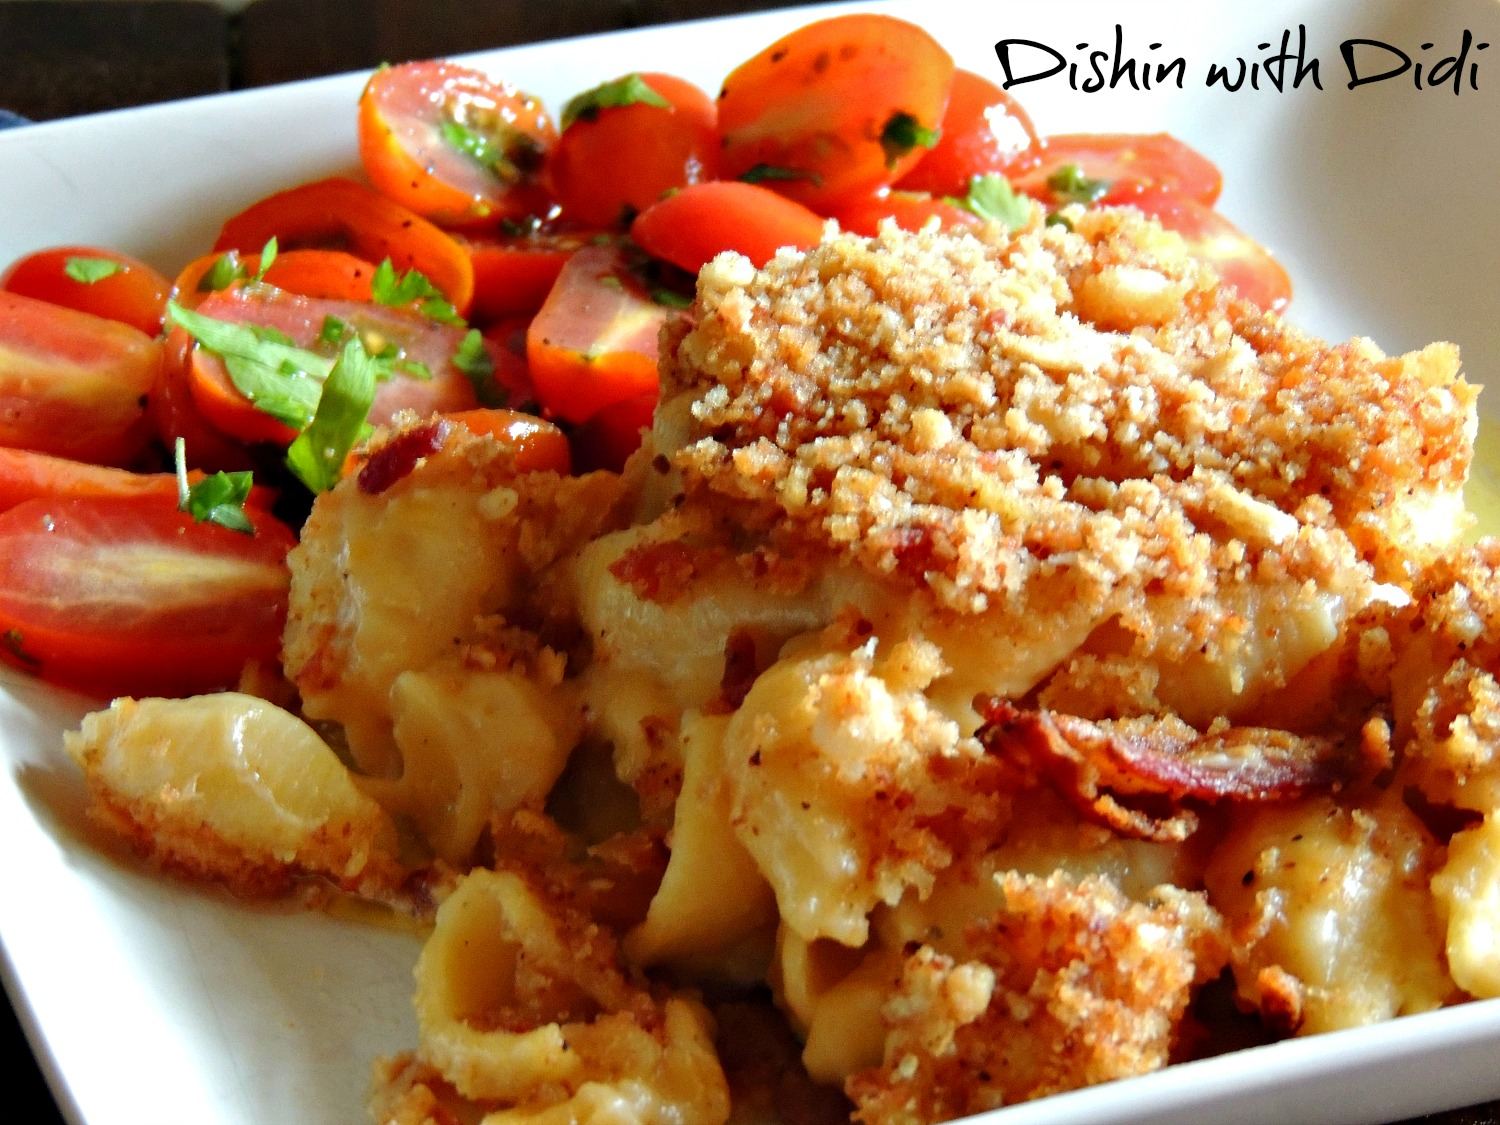 Dishin with Didi: Three Cheese Macaroni & Cheese with Bacon Topping